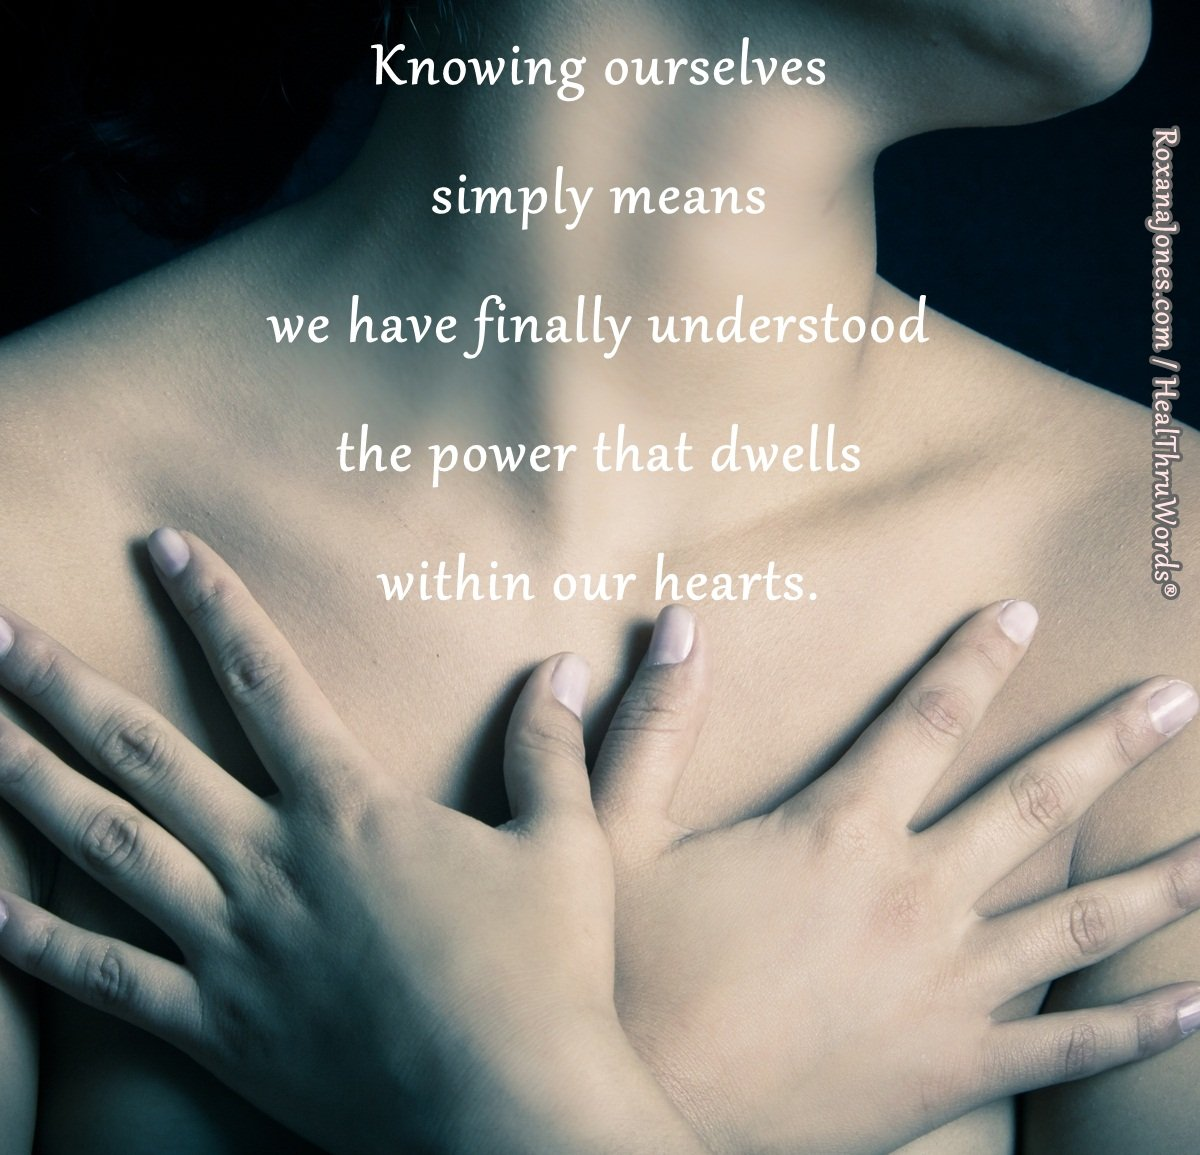 Inspirational Image: Knowing Ourselves